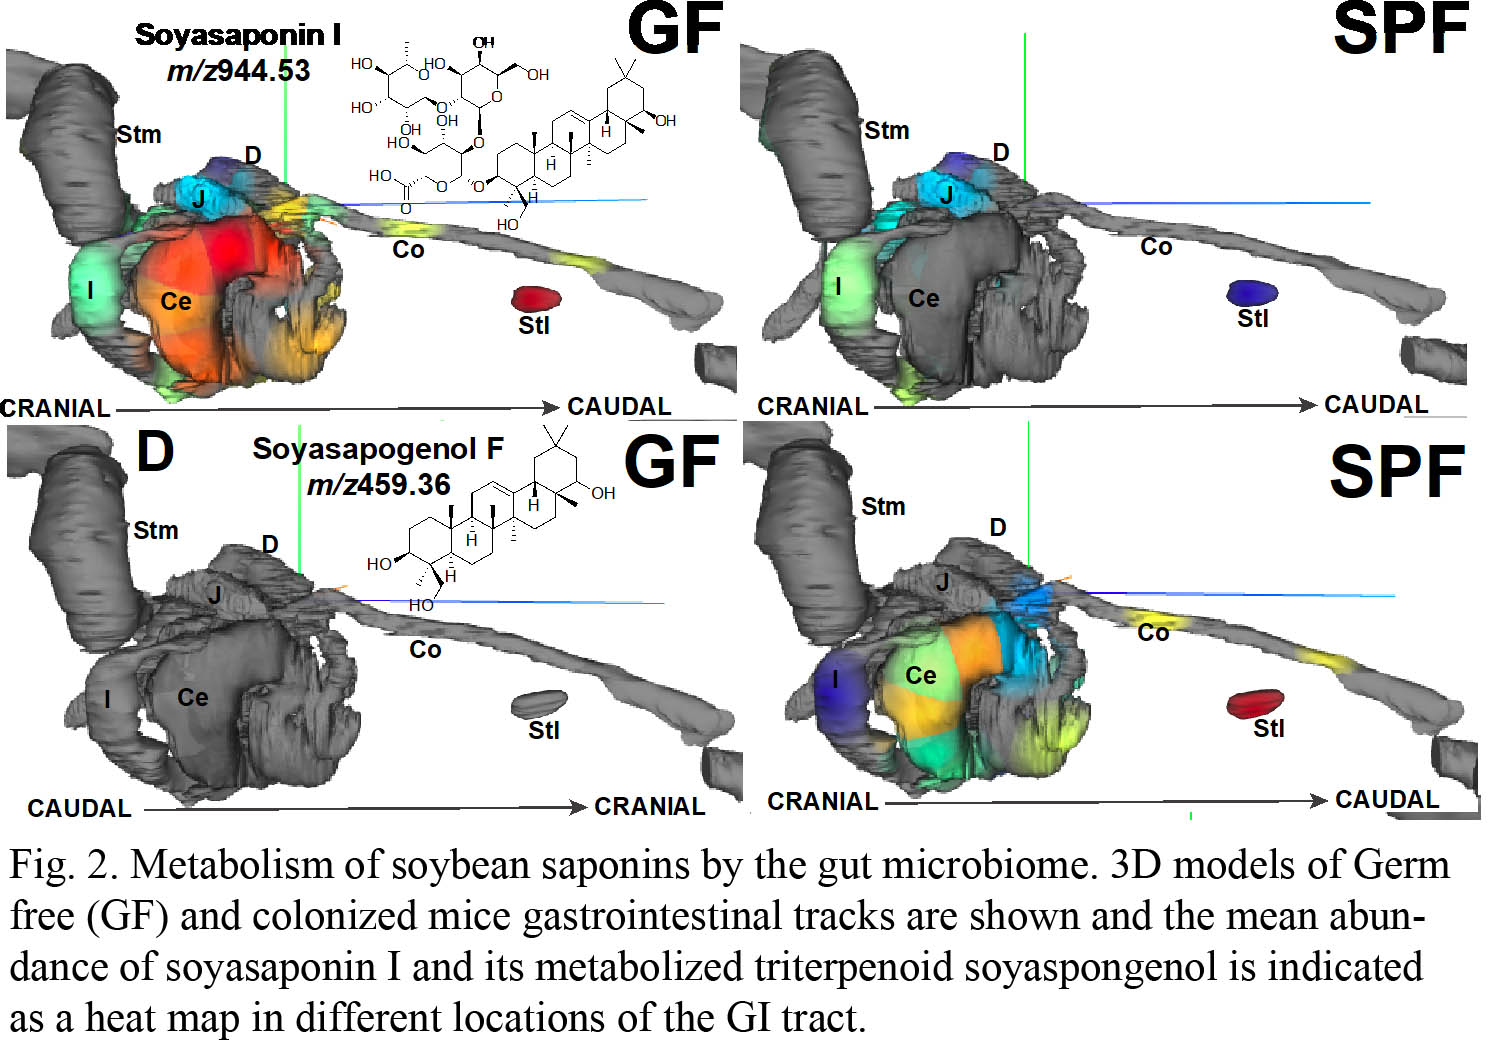 Metabolism of soybean saponins by the gut microbiome